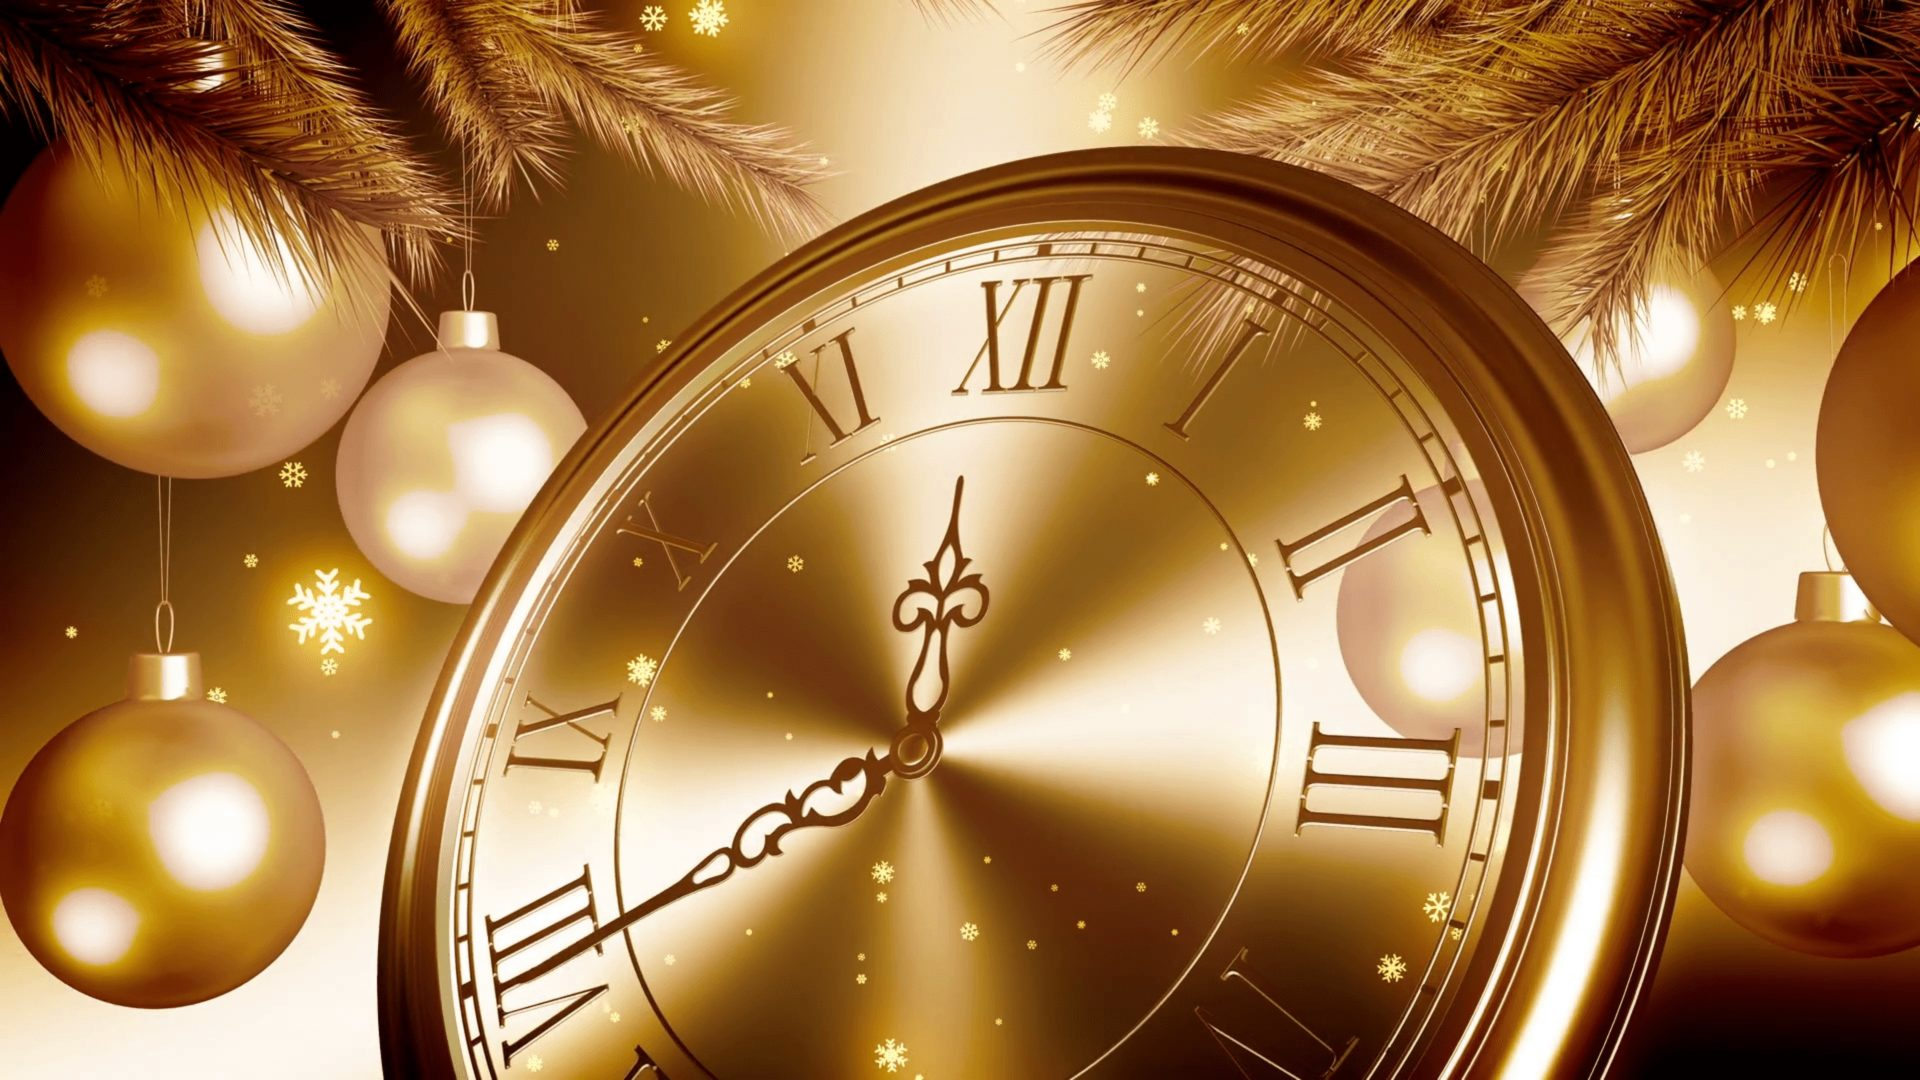 Happy New Year 2020 Golden Clock Countdown In New Years Eve 1920x1080